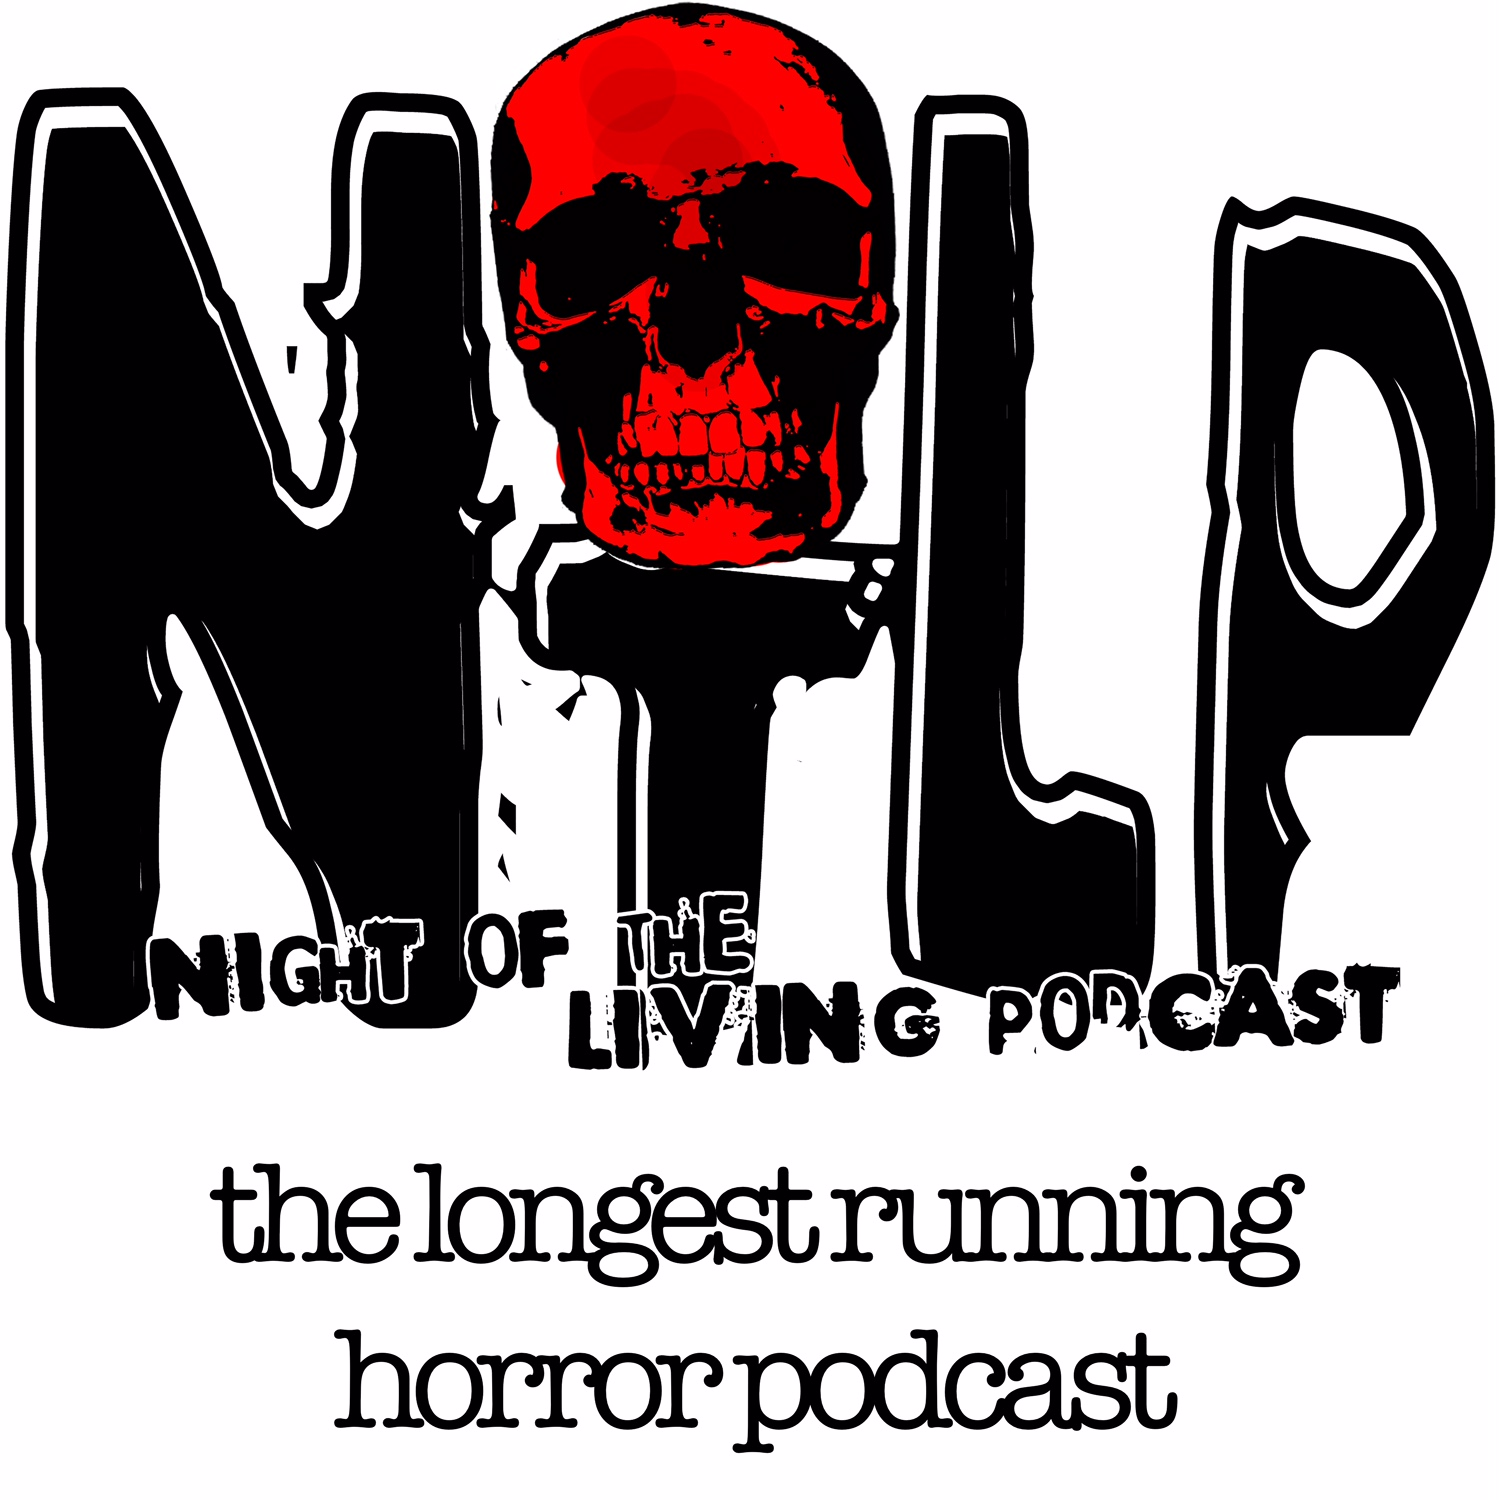 Night of the Living Podcast: Horror, Sci-Fi and Fantasy Film Discussion show art